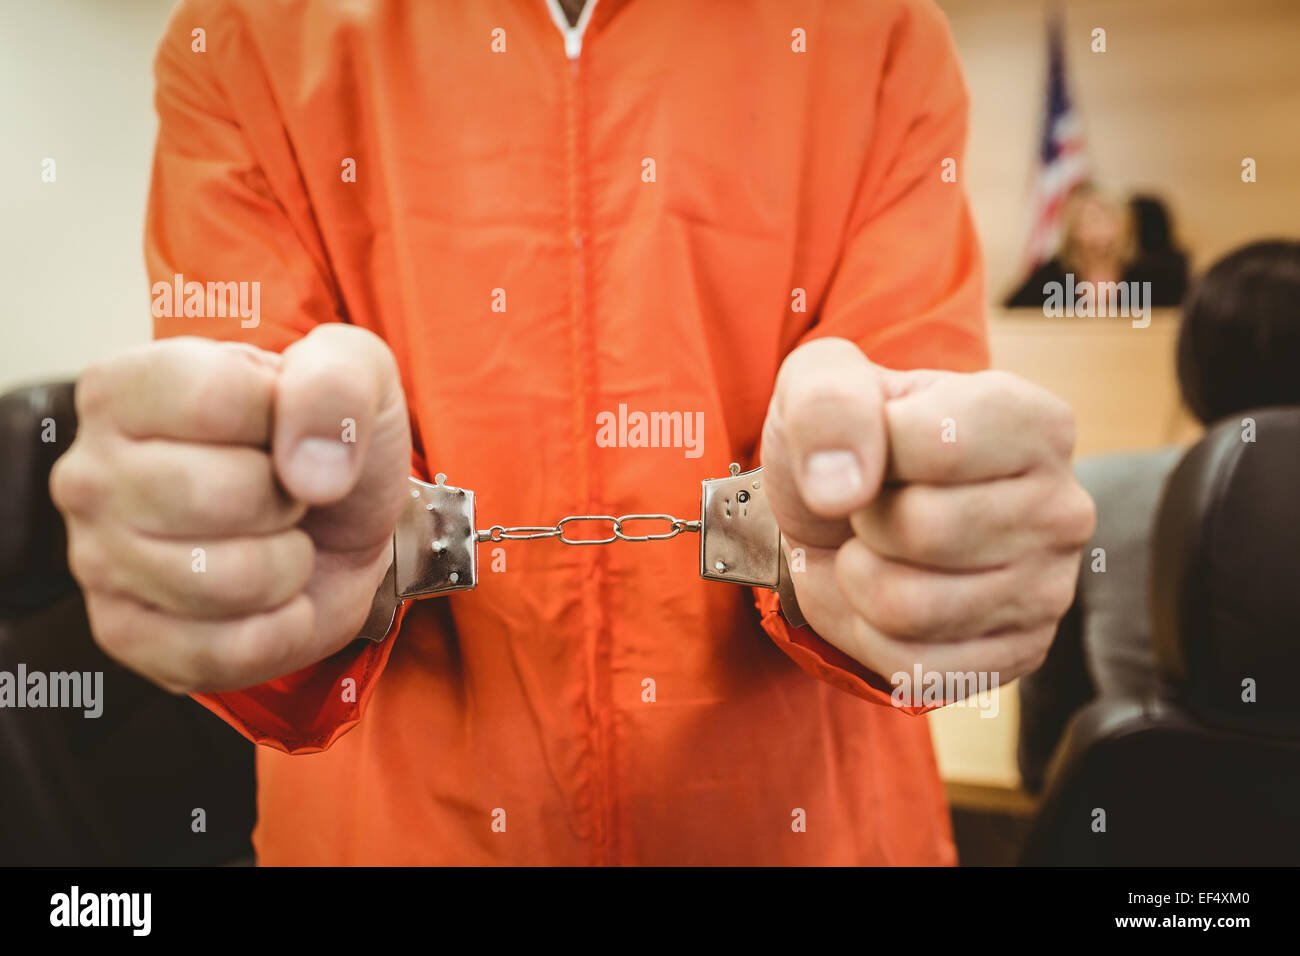 Prisoner in handcuffs clenching fists - Stock Image